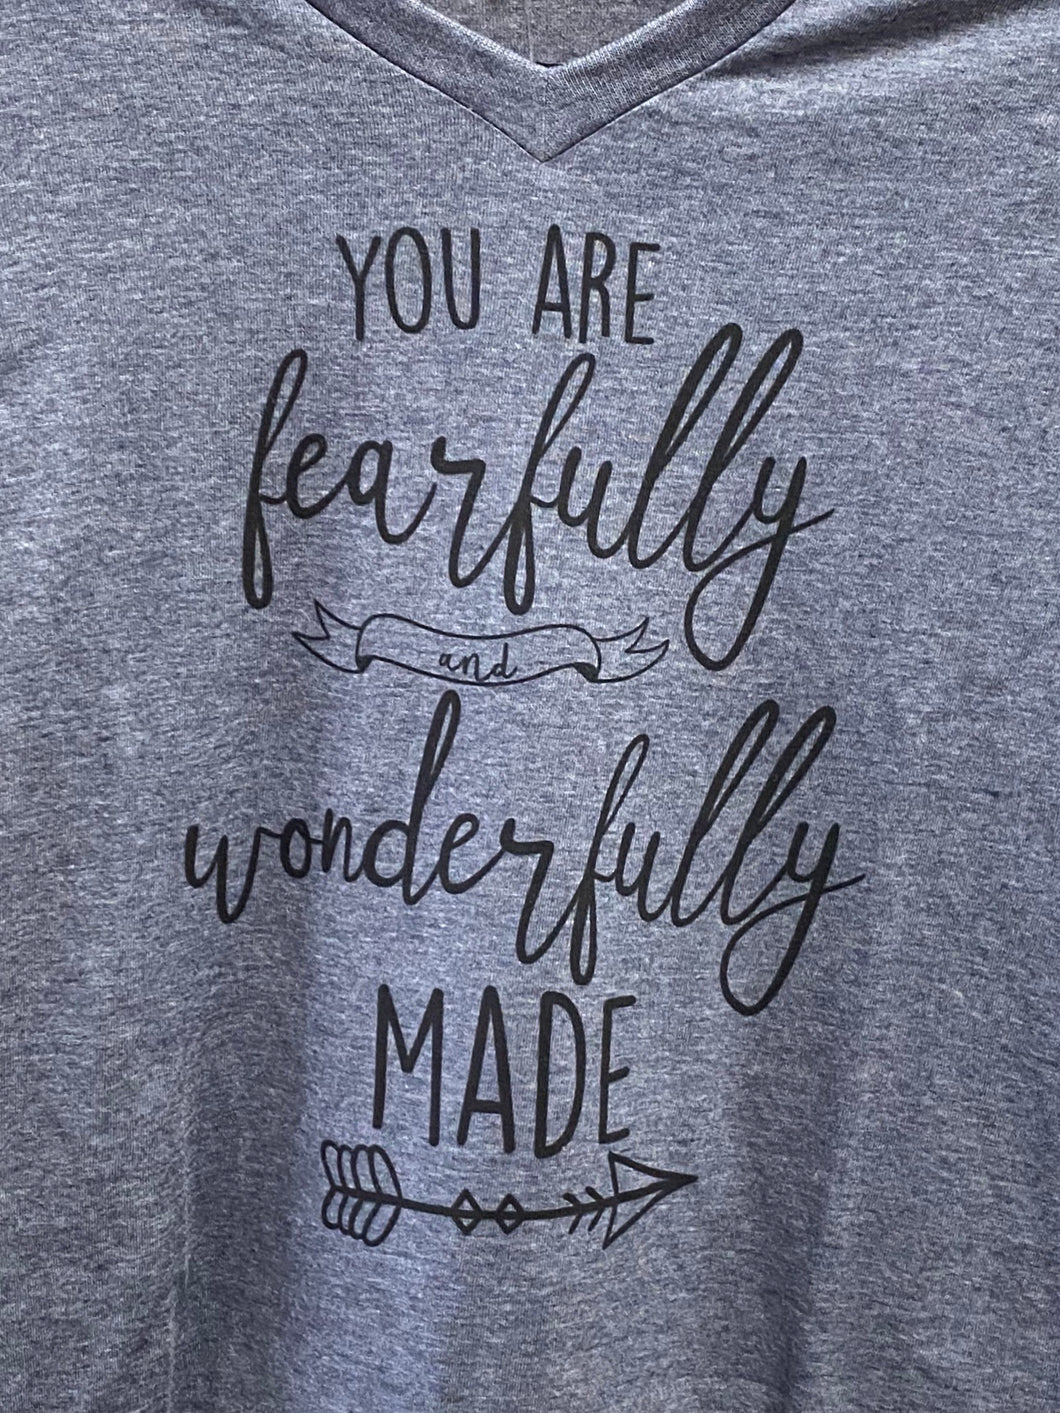 Fearfully & Wonderfully Made - Heathered Blue V Neck